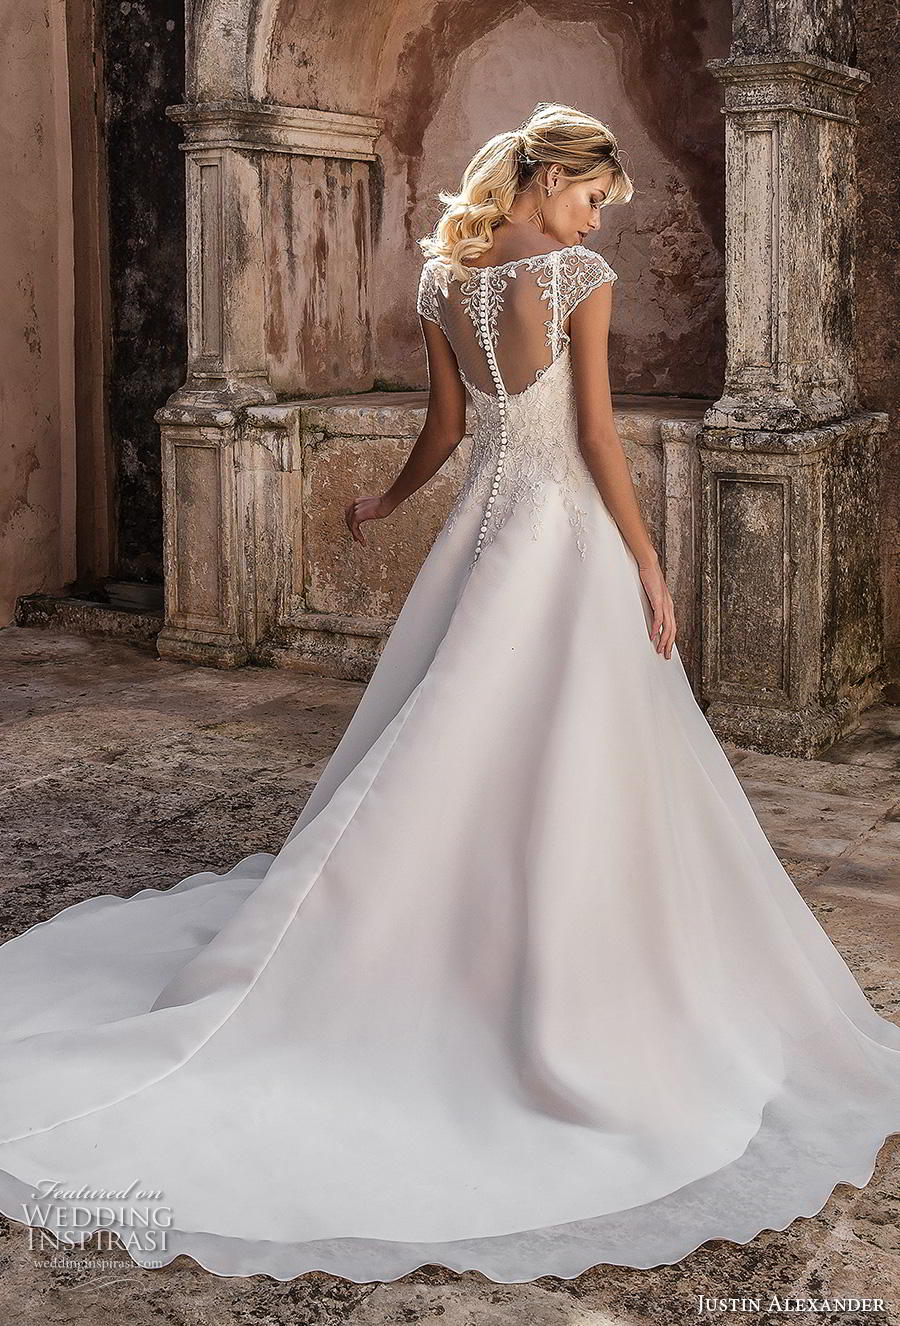 justin alexander spring 2019 bridal cap sleeves illusion bateau sweetheart neckline heavily embellished bodice classic romantic a line wedding dress sheer button back chapel train (12) bv